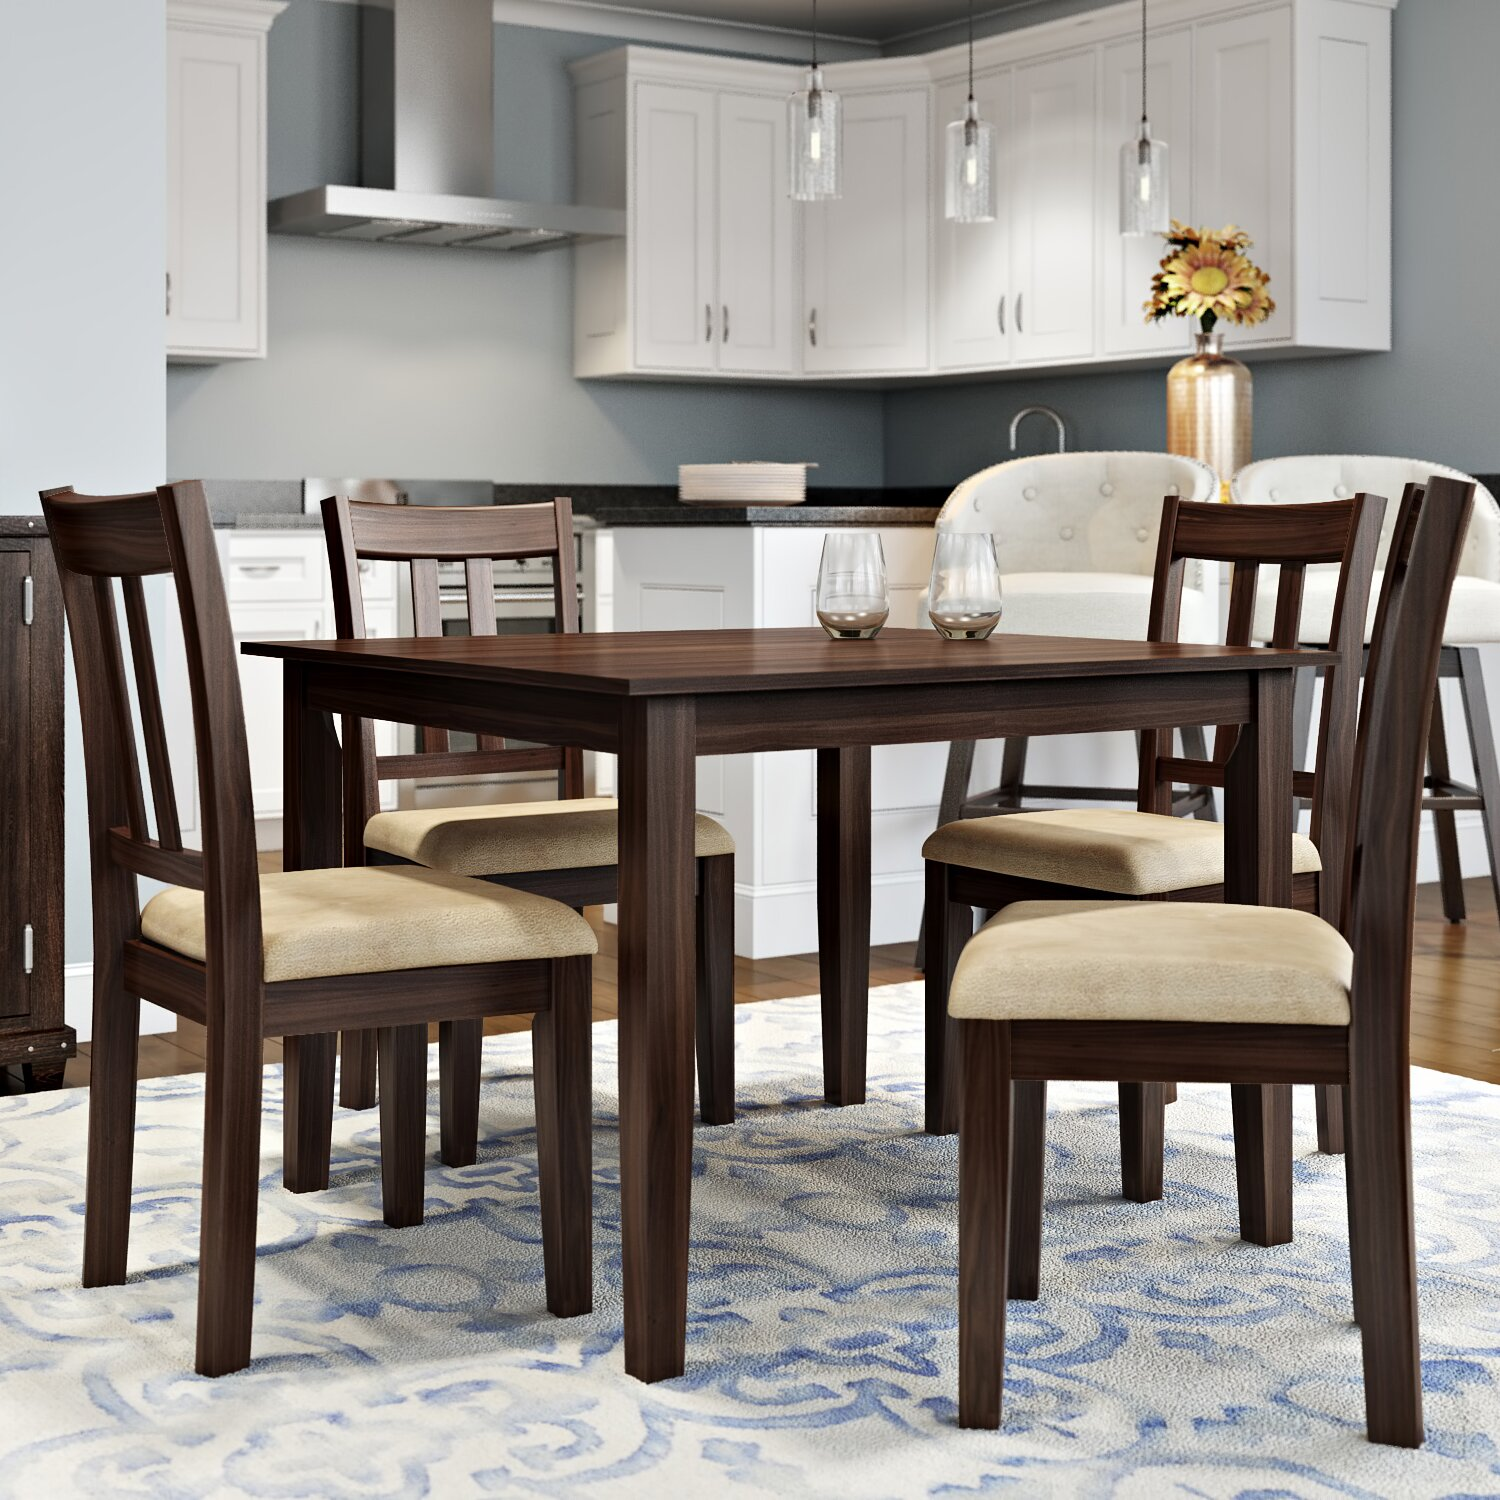 Alcott Hill Primrose Road  Piece Dining Set  Reviews Wayfair - Leaky faucet bathroolearn leather dining room chairs on sale